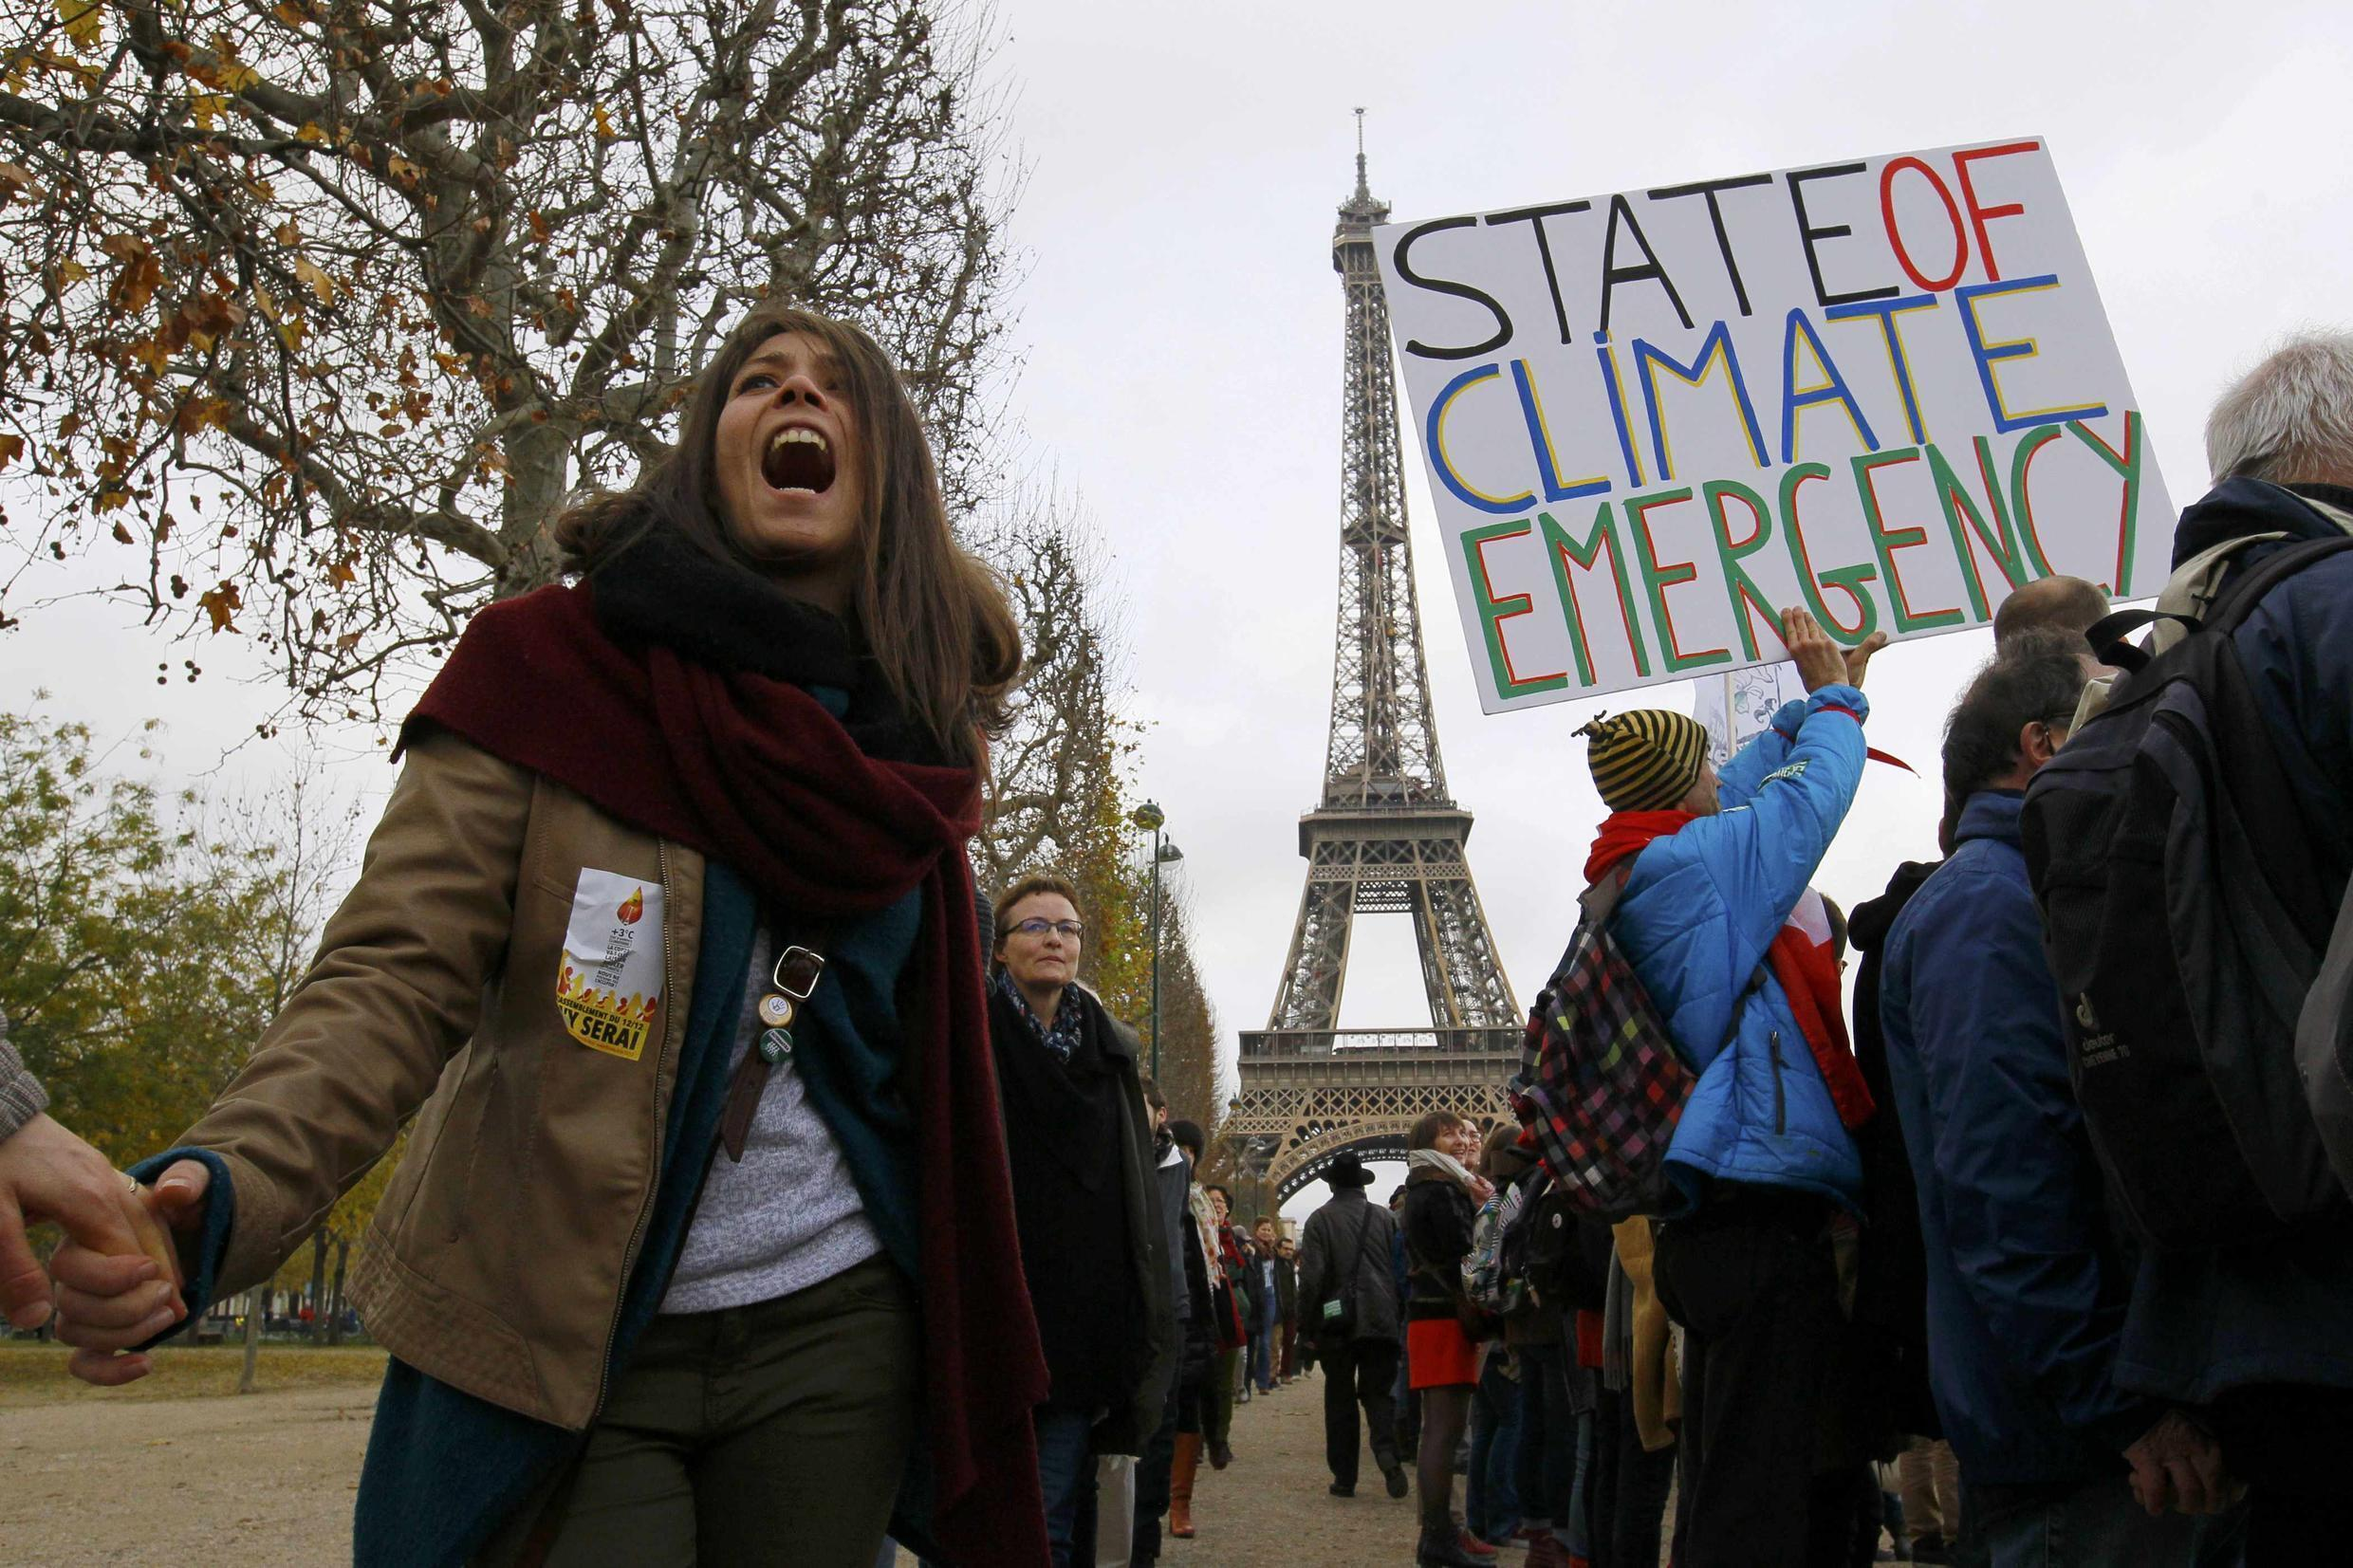 Environmentalists hold hands as they form a human chain during a demonstration near the Eiffel Tower in Paris, France, as the World Climate Change Conference 2015 (COP21) continues near the French capital in Le Bourget, December 12, 2015.